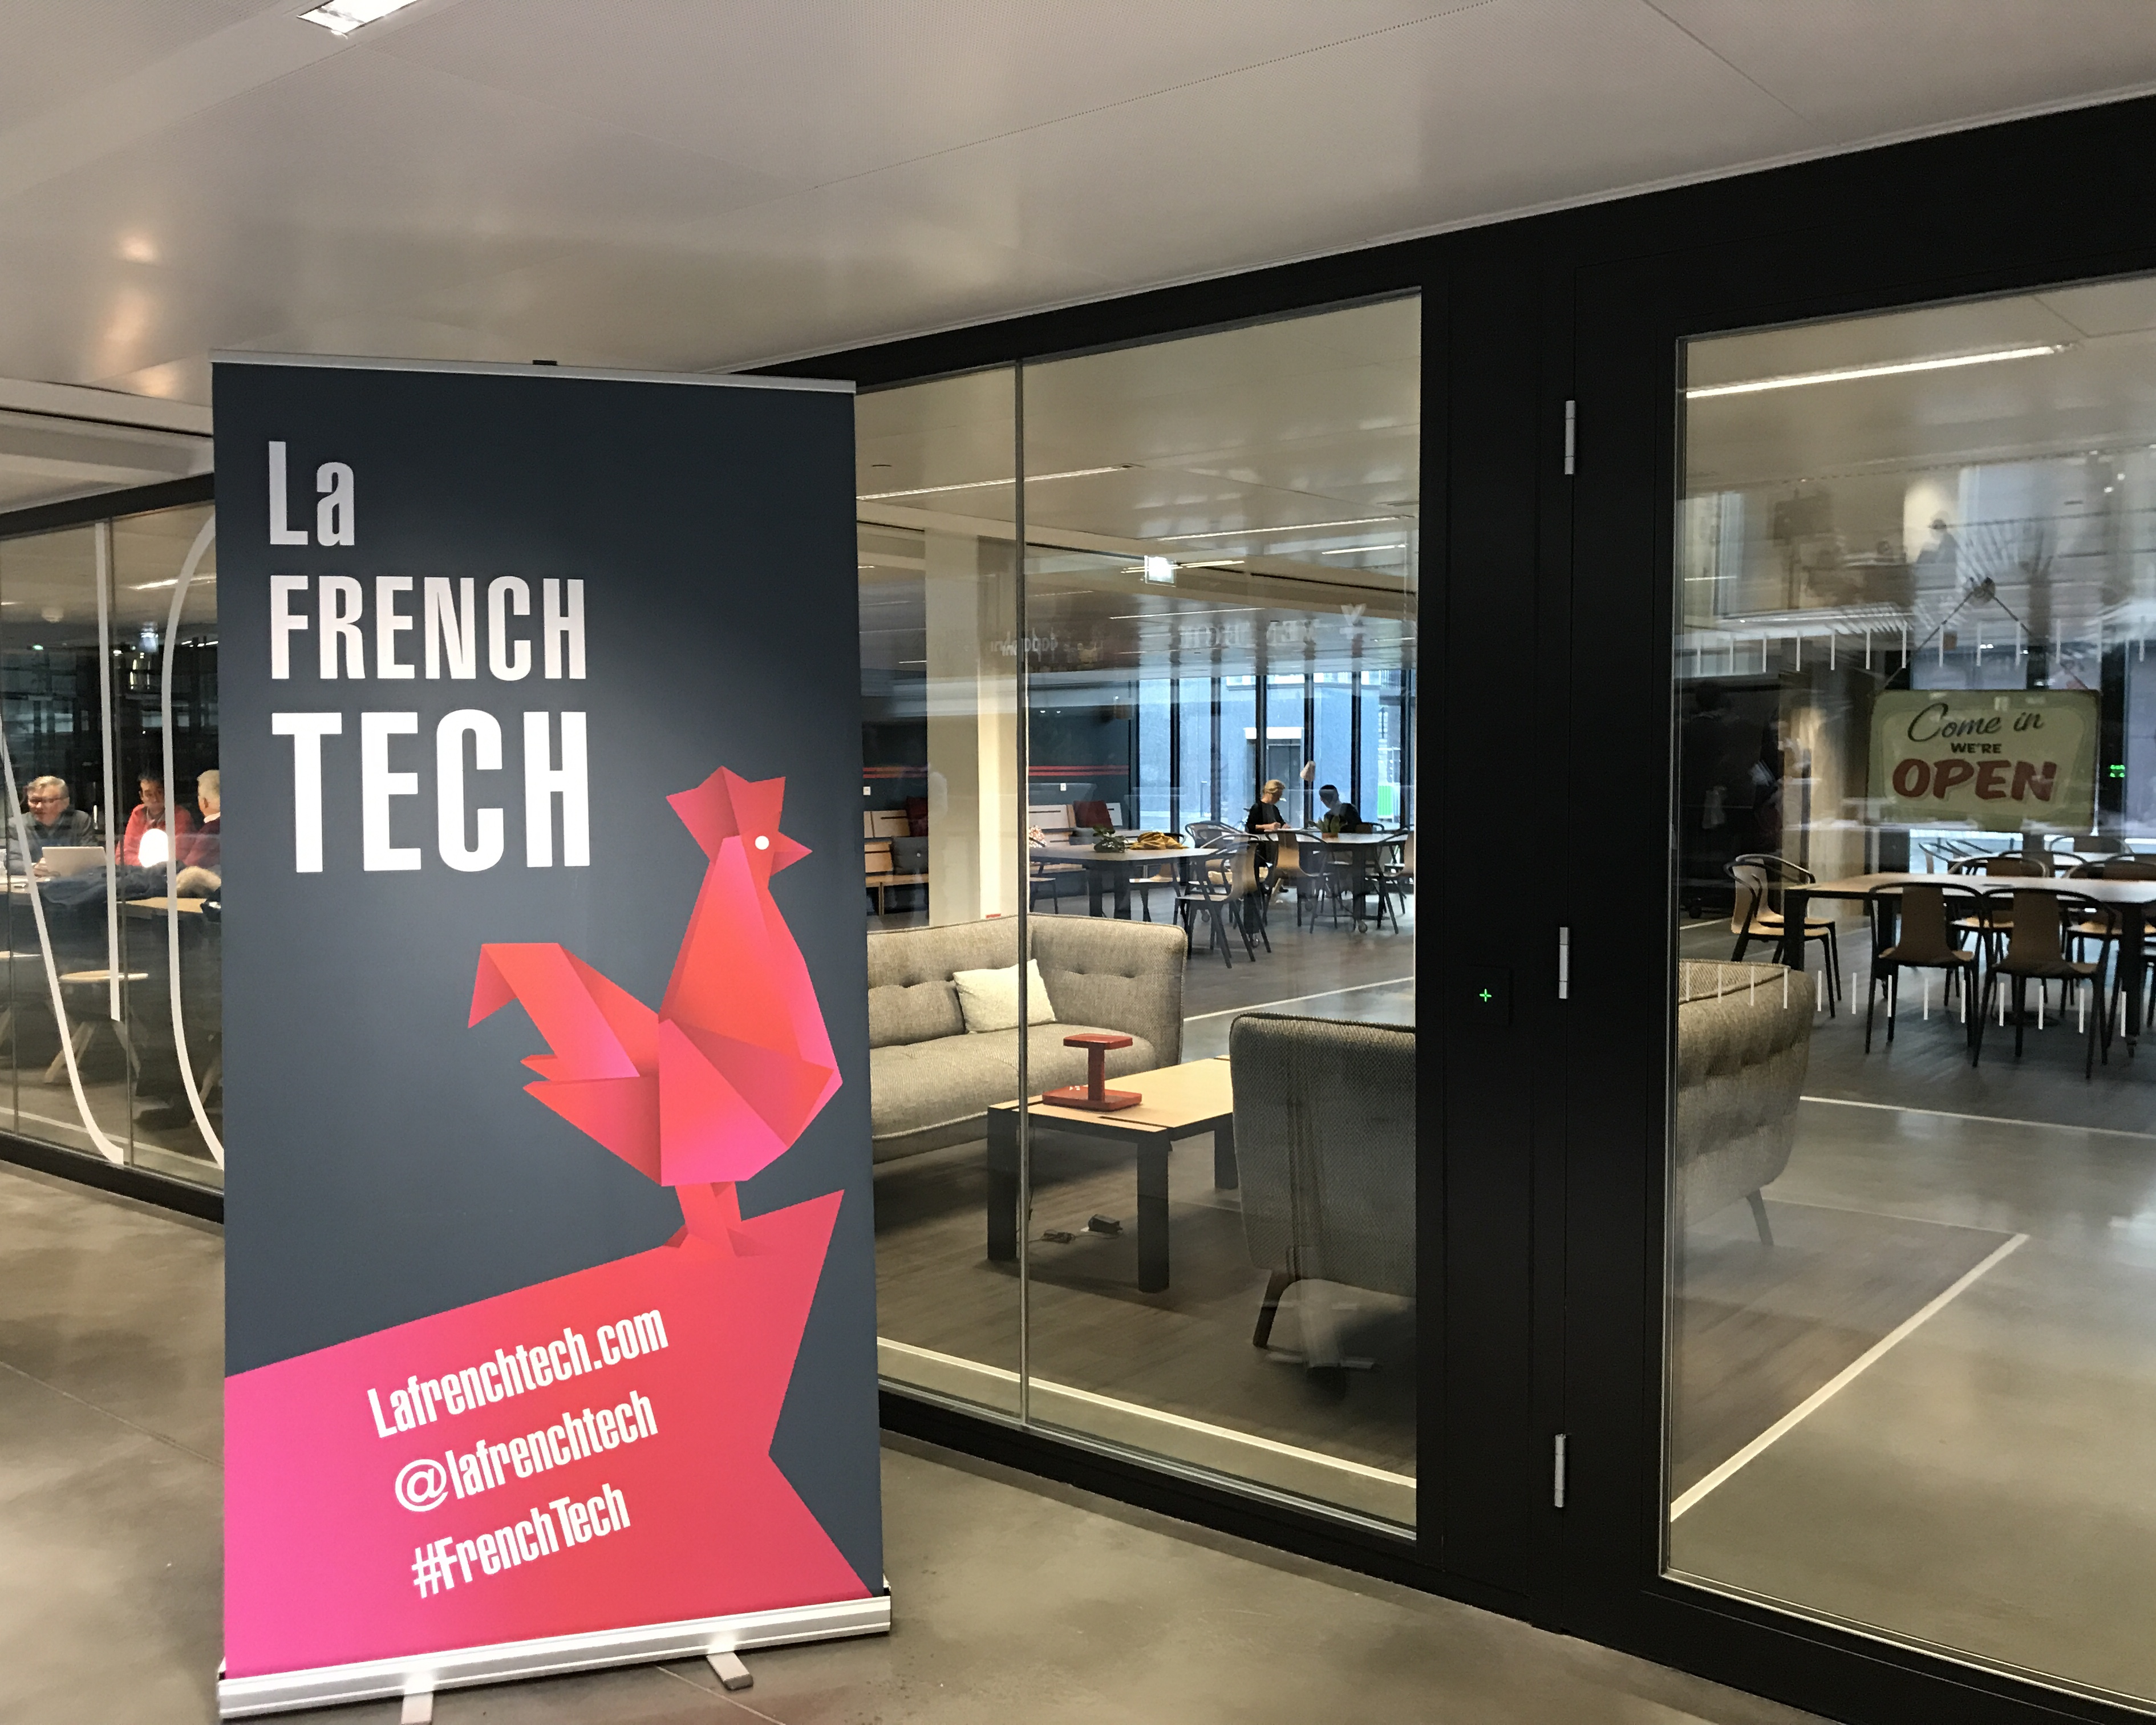 is_stationf_frenchtech.jpg